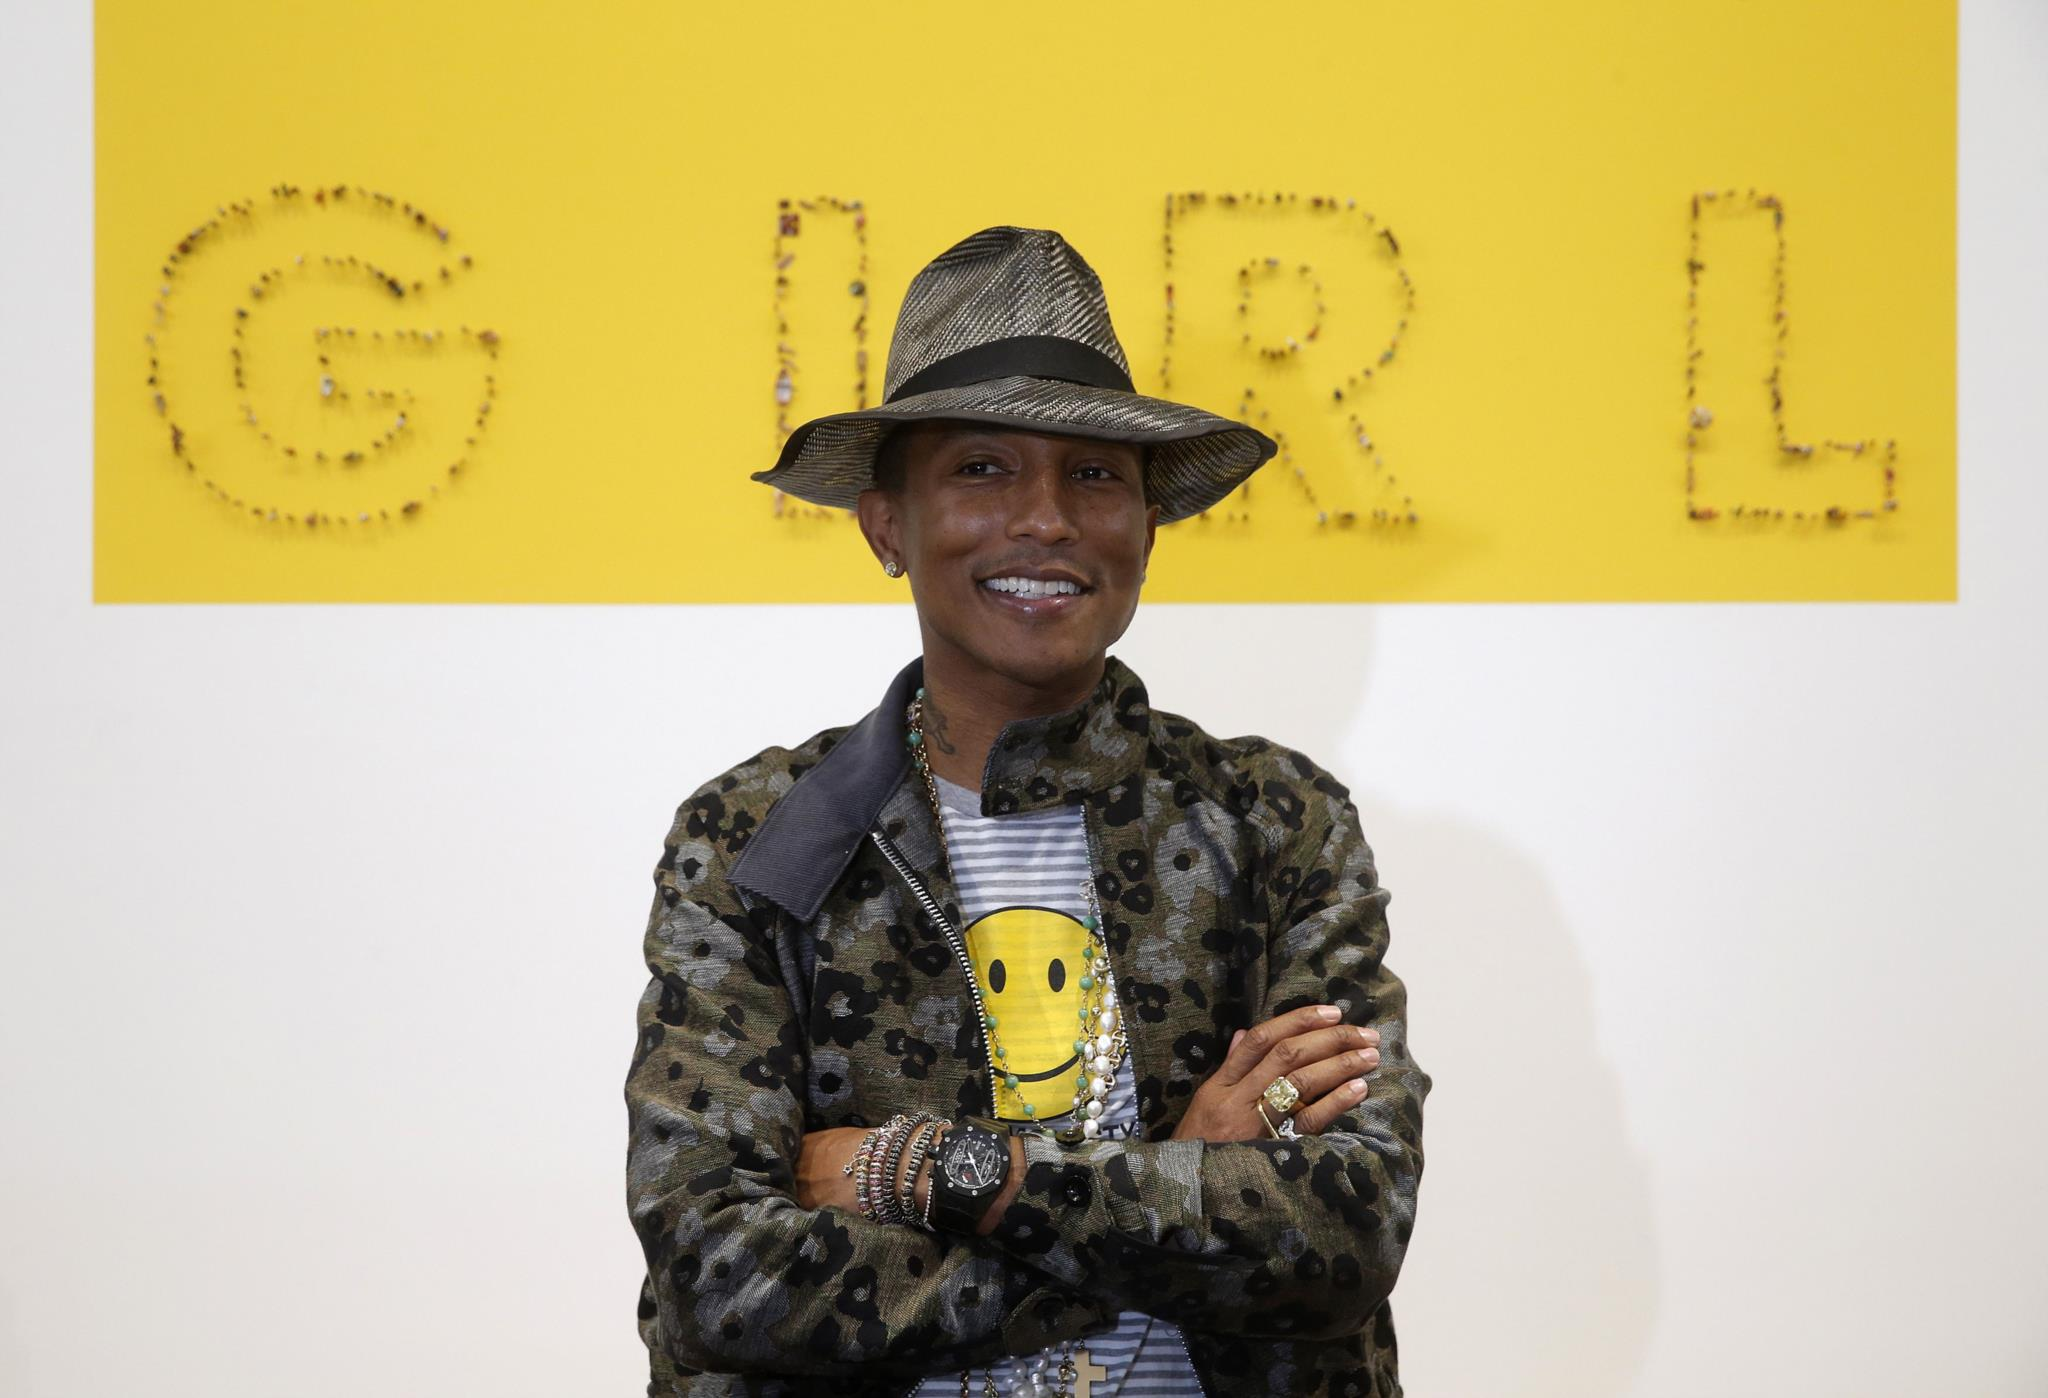 PÚBLICO - A vida de Pharrell Williams vai dar um filme (musical, claro)